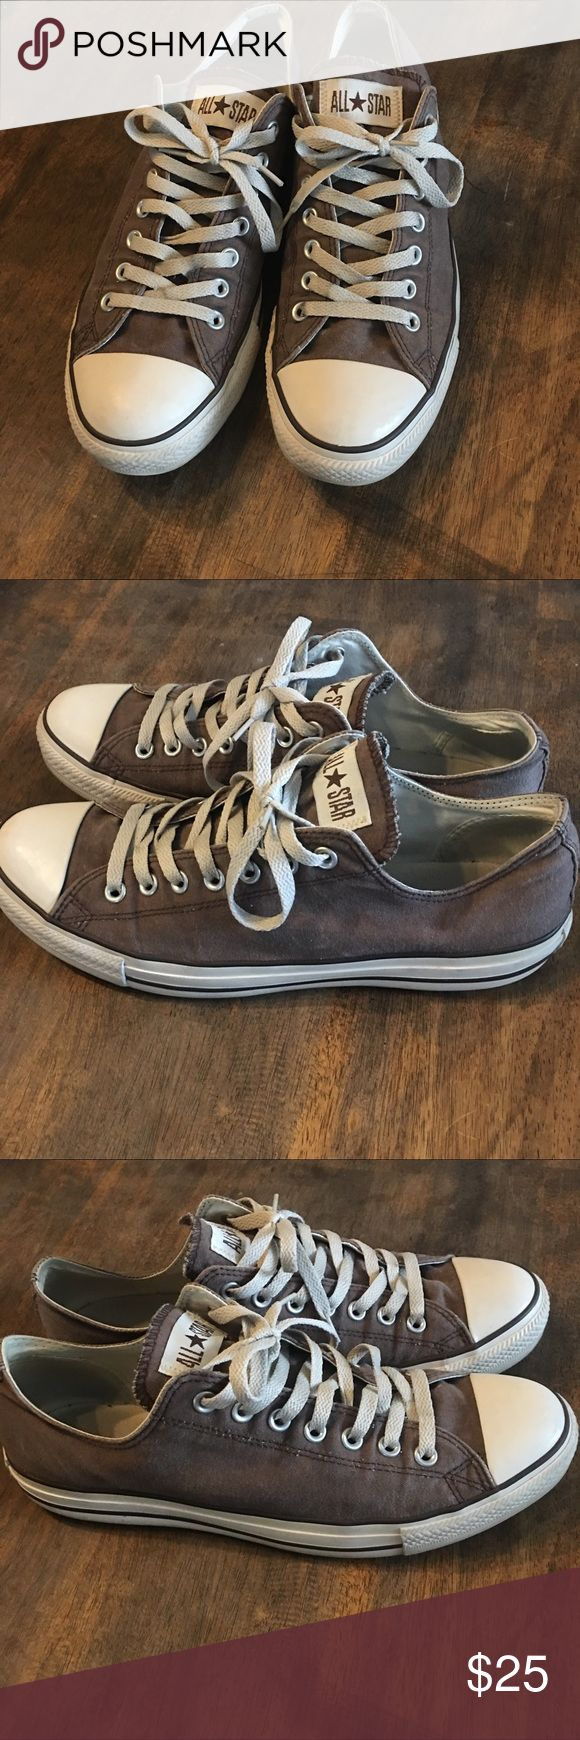 Converse Classics - Faded Brown Oxford Converse Classics - Faded Brown Oxford, the Classics with a little fade just like it was meant to be! These are not new but they very low miles on them. Converse Shoes Sneakers